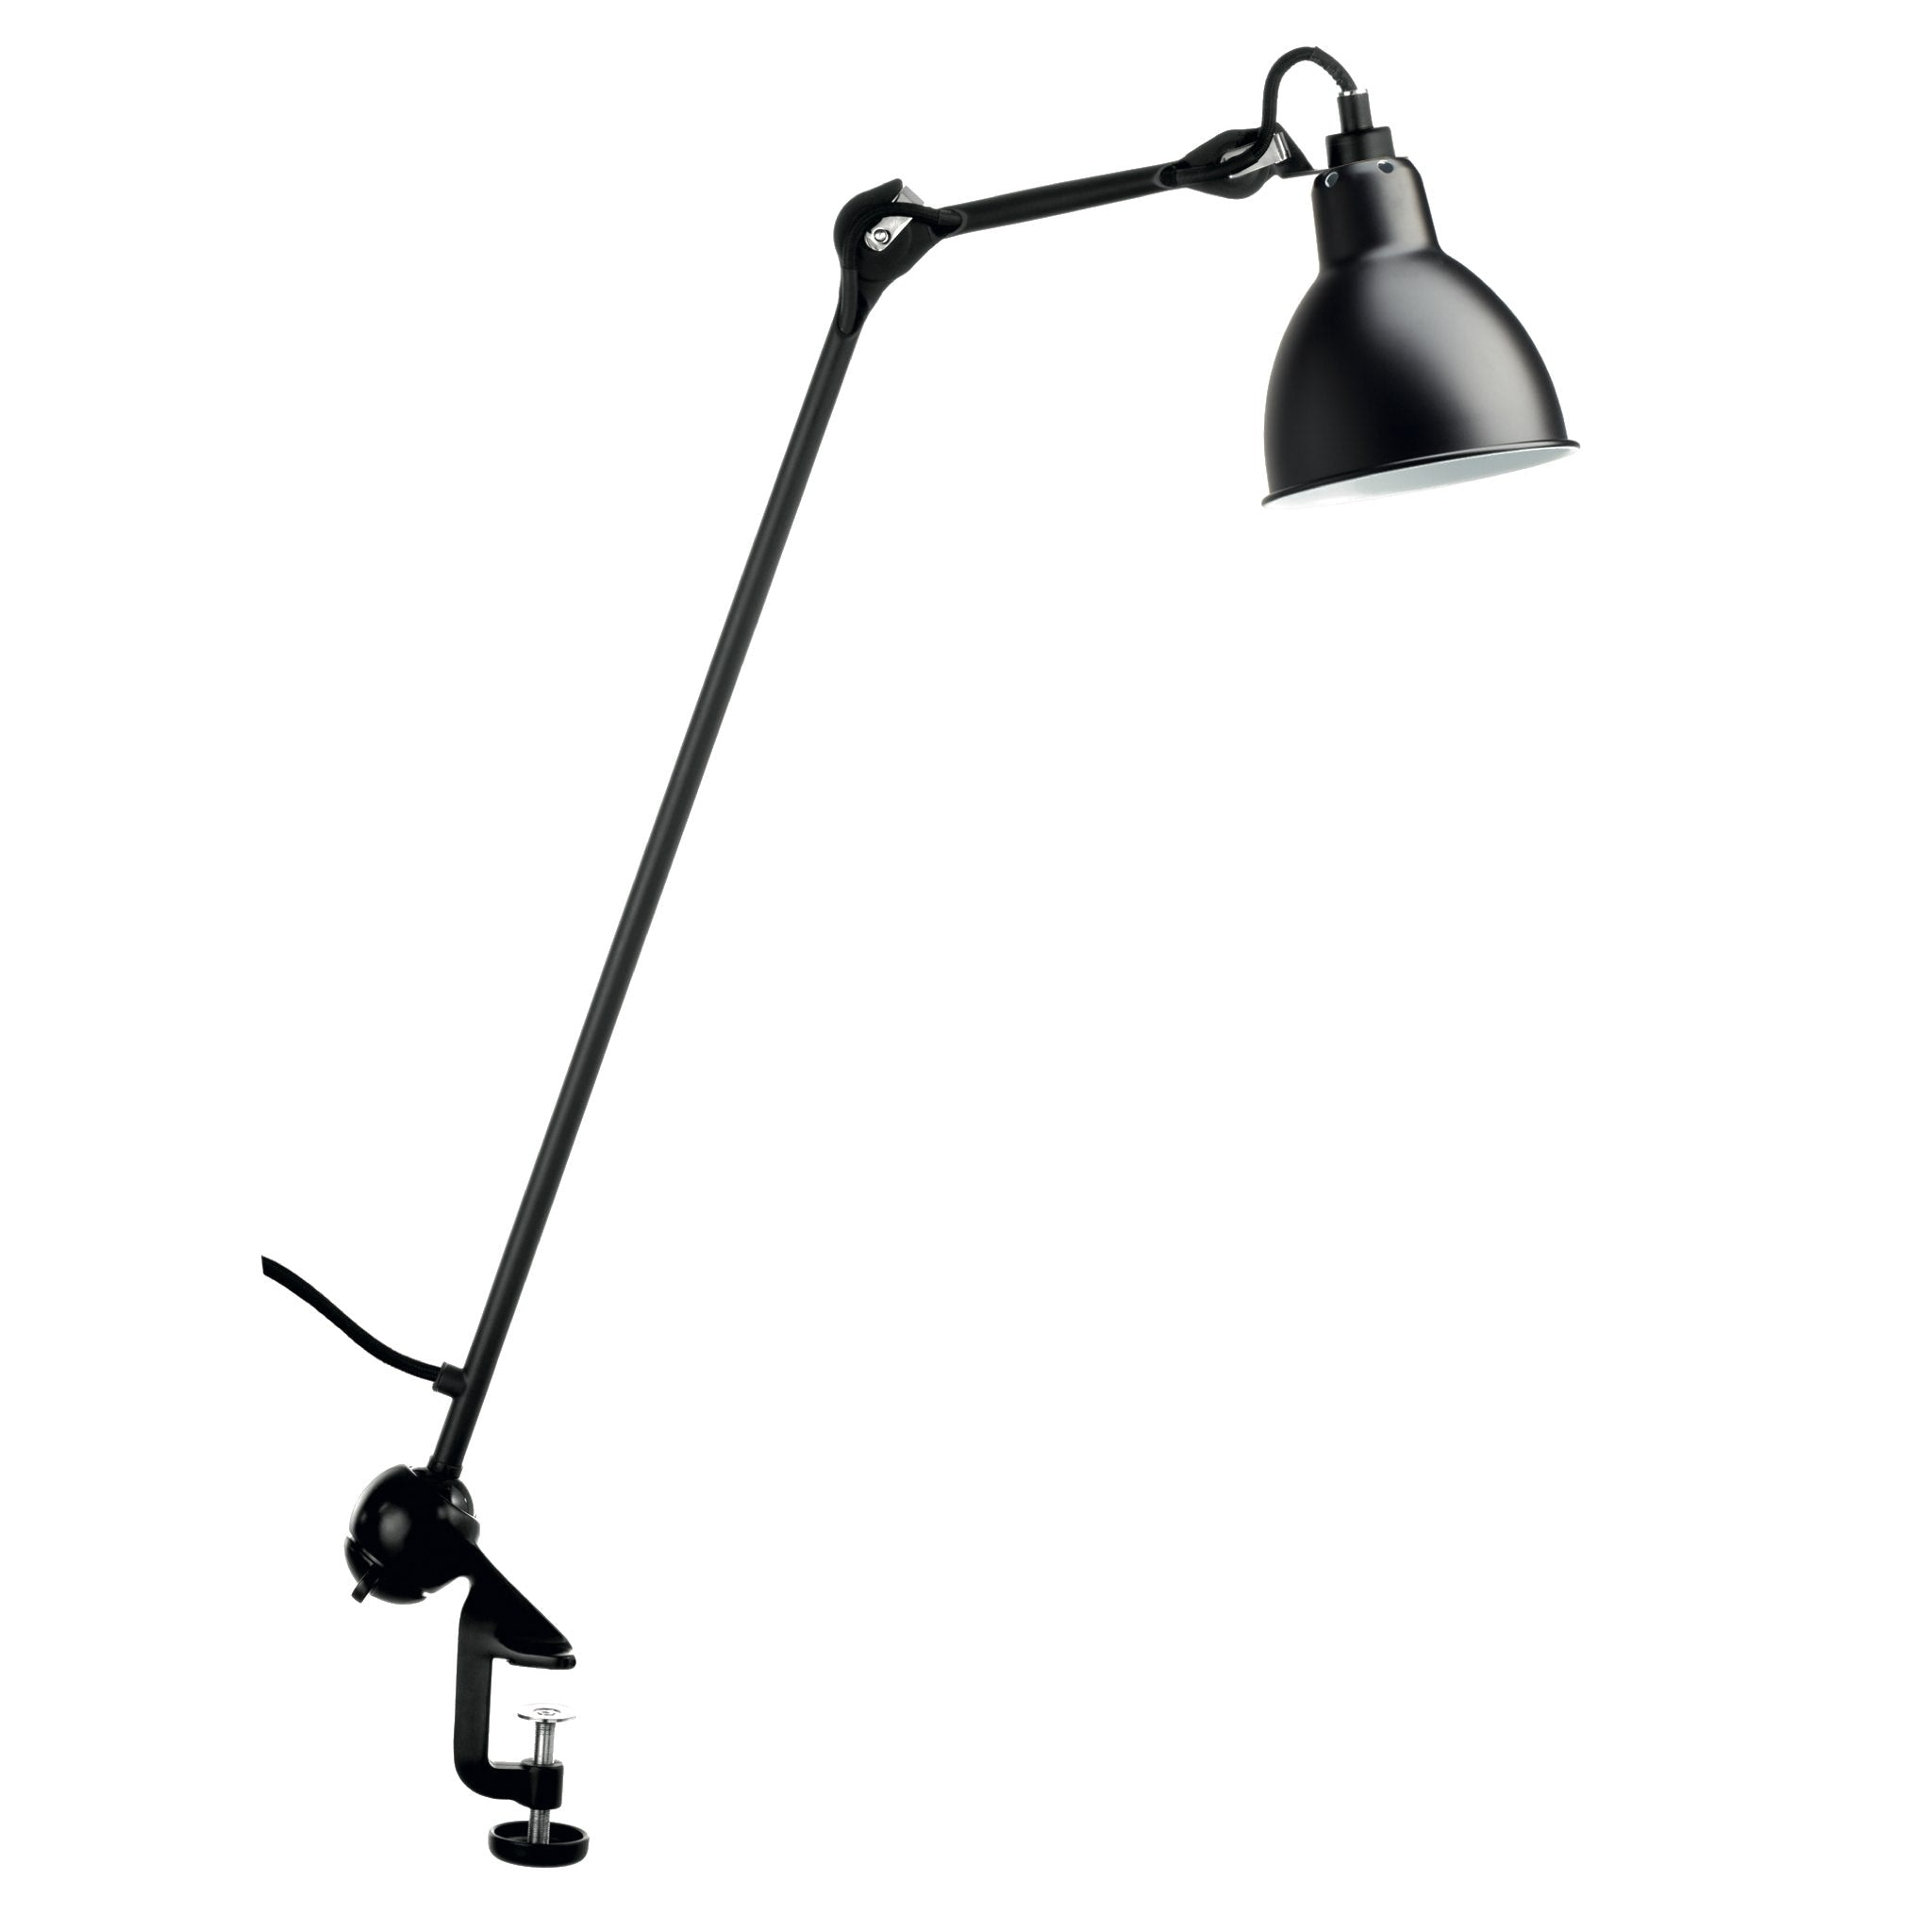 Lampe Gras 201 Architect Lamp by La Lampe Gras